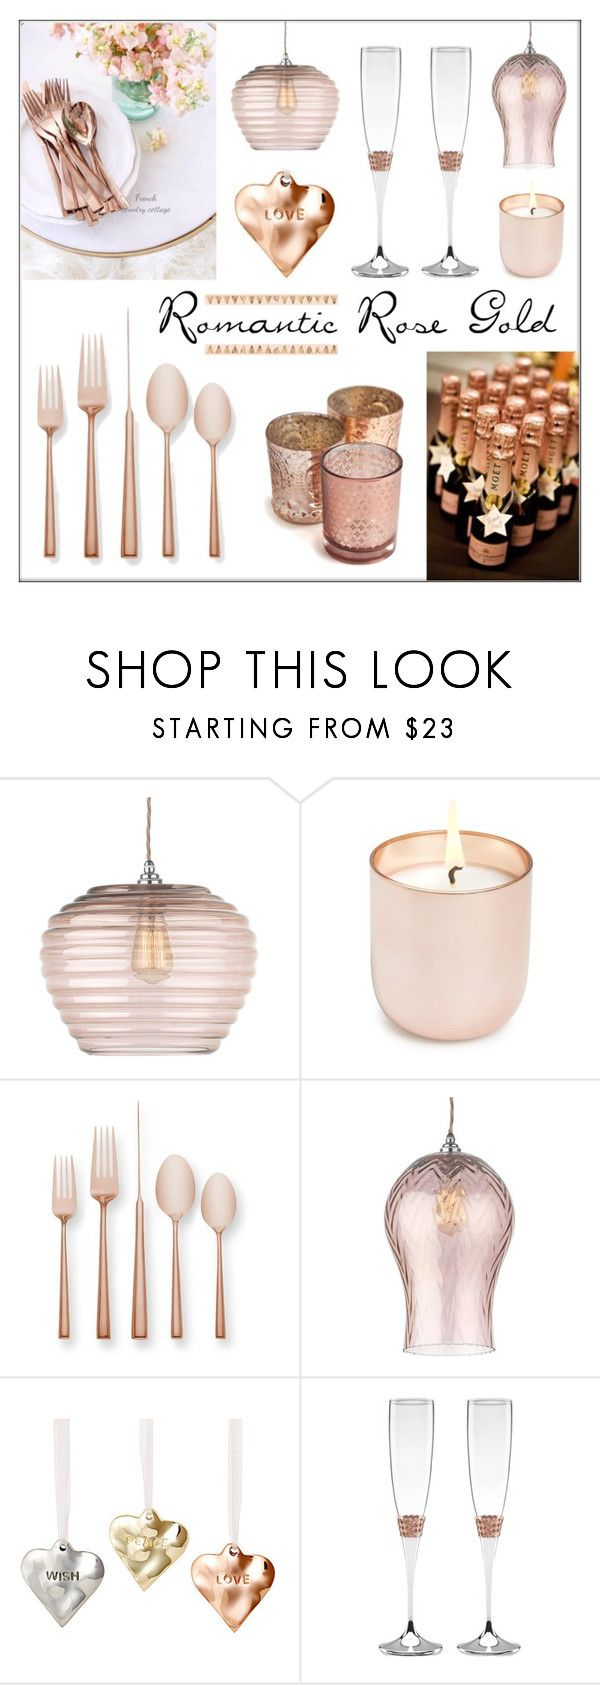 """Romantic Rose Gold"" by lgb321 ❤ liked on Polyvore featuring interior, interiors, interior design, home, home decor, interior decorating, Heathfield & Co., Jonathan Adler, Kate Spade and Lunares"